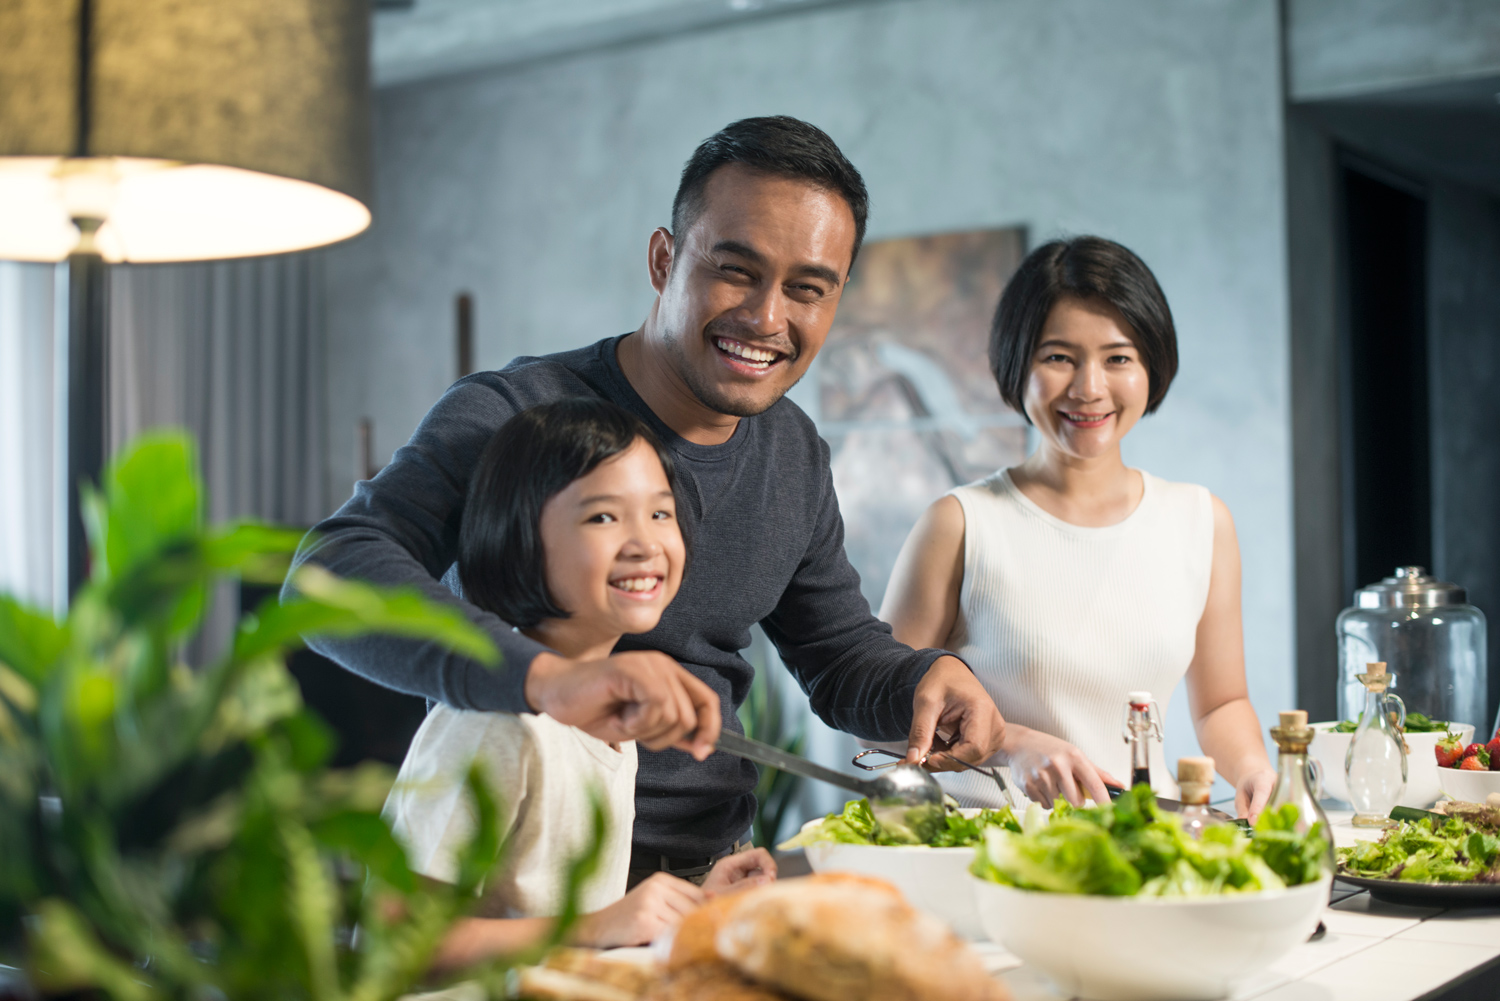 Young-Asian-family-with-a-child-in-the-kitchen-preparing-healthy-meal.jpg